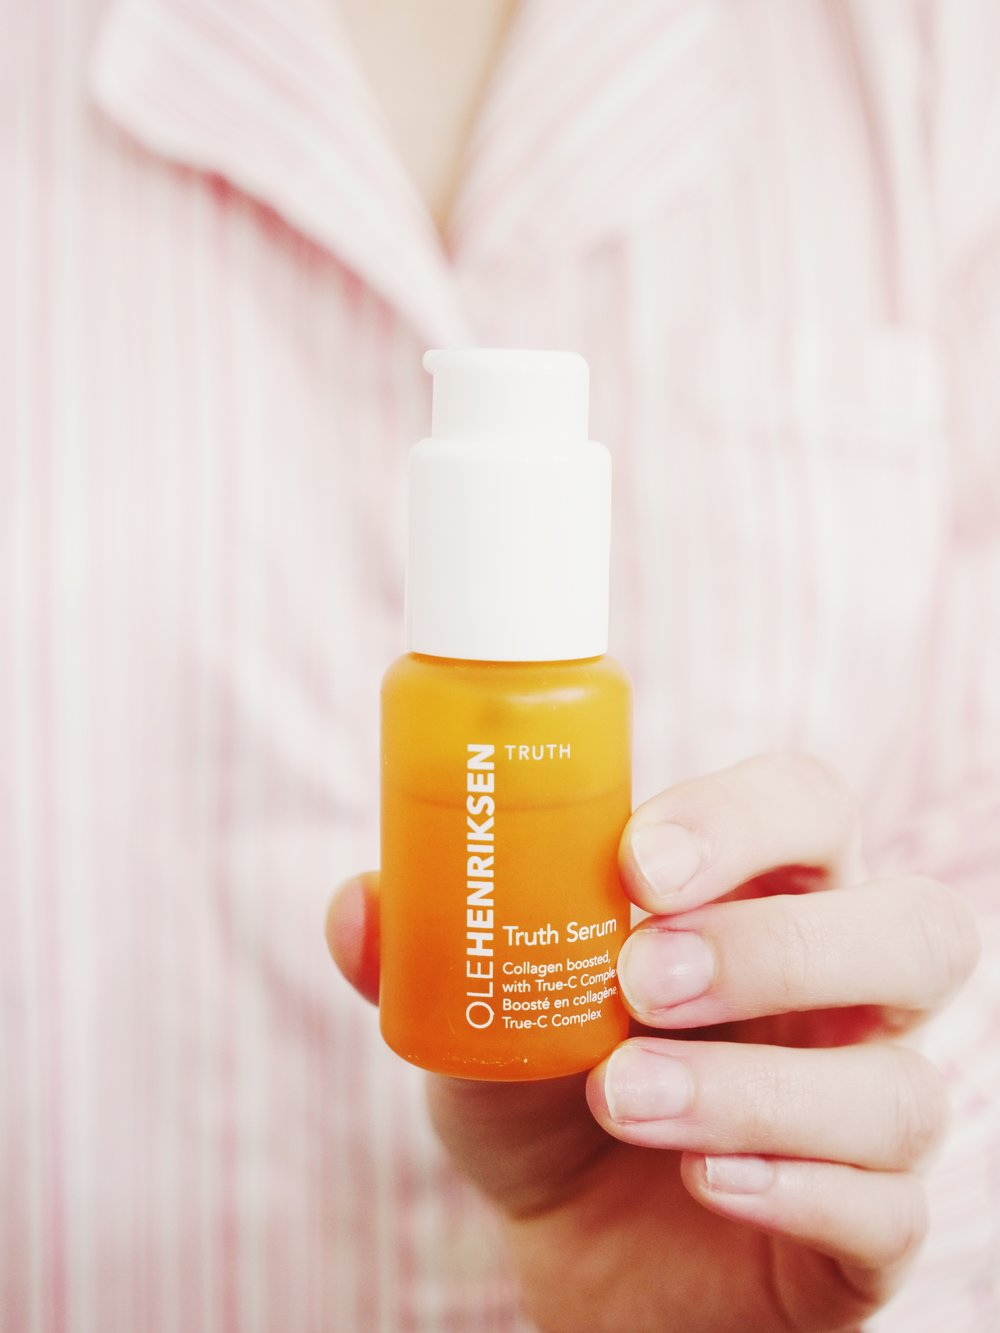 another product i love by ole henriksen is the vitamin-c truth serum. it helps elevate your glow and overall brightness    to use: every morning